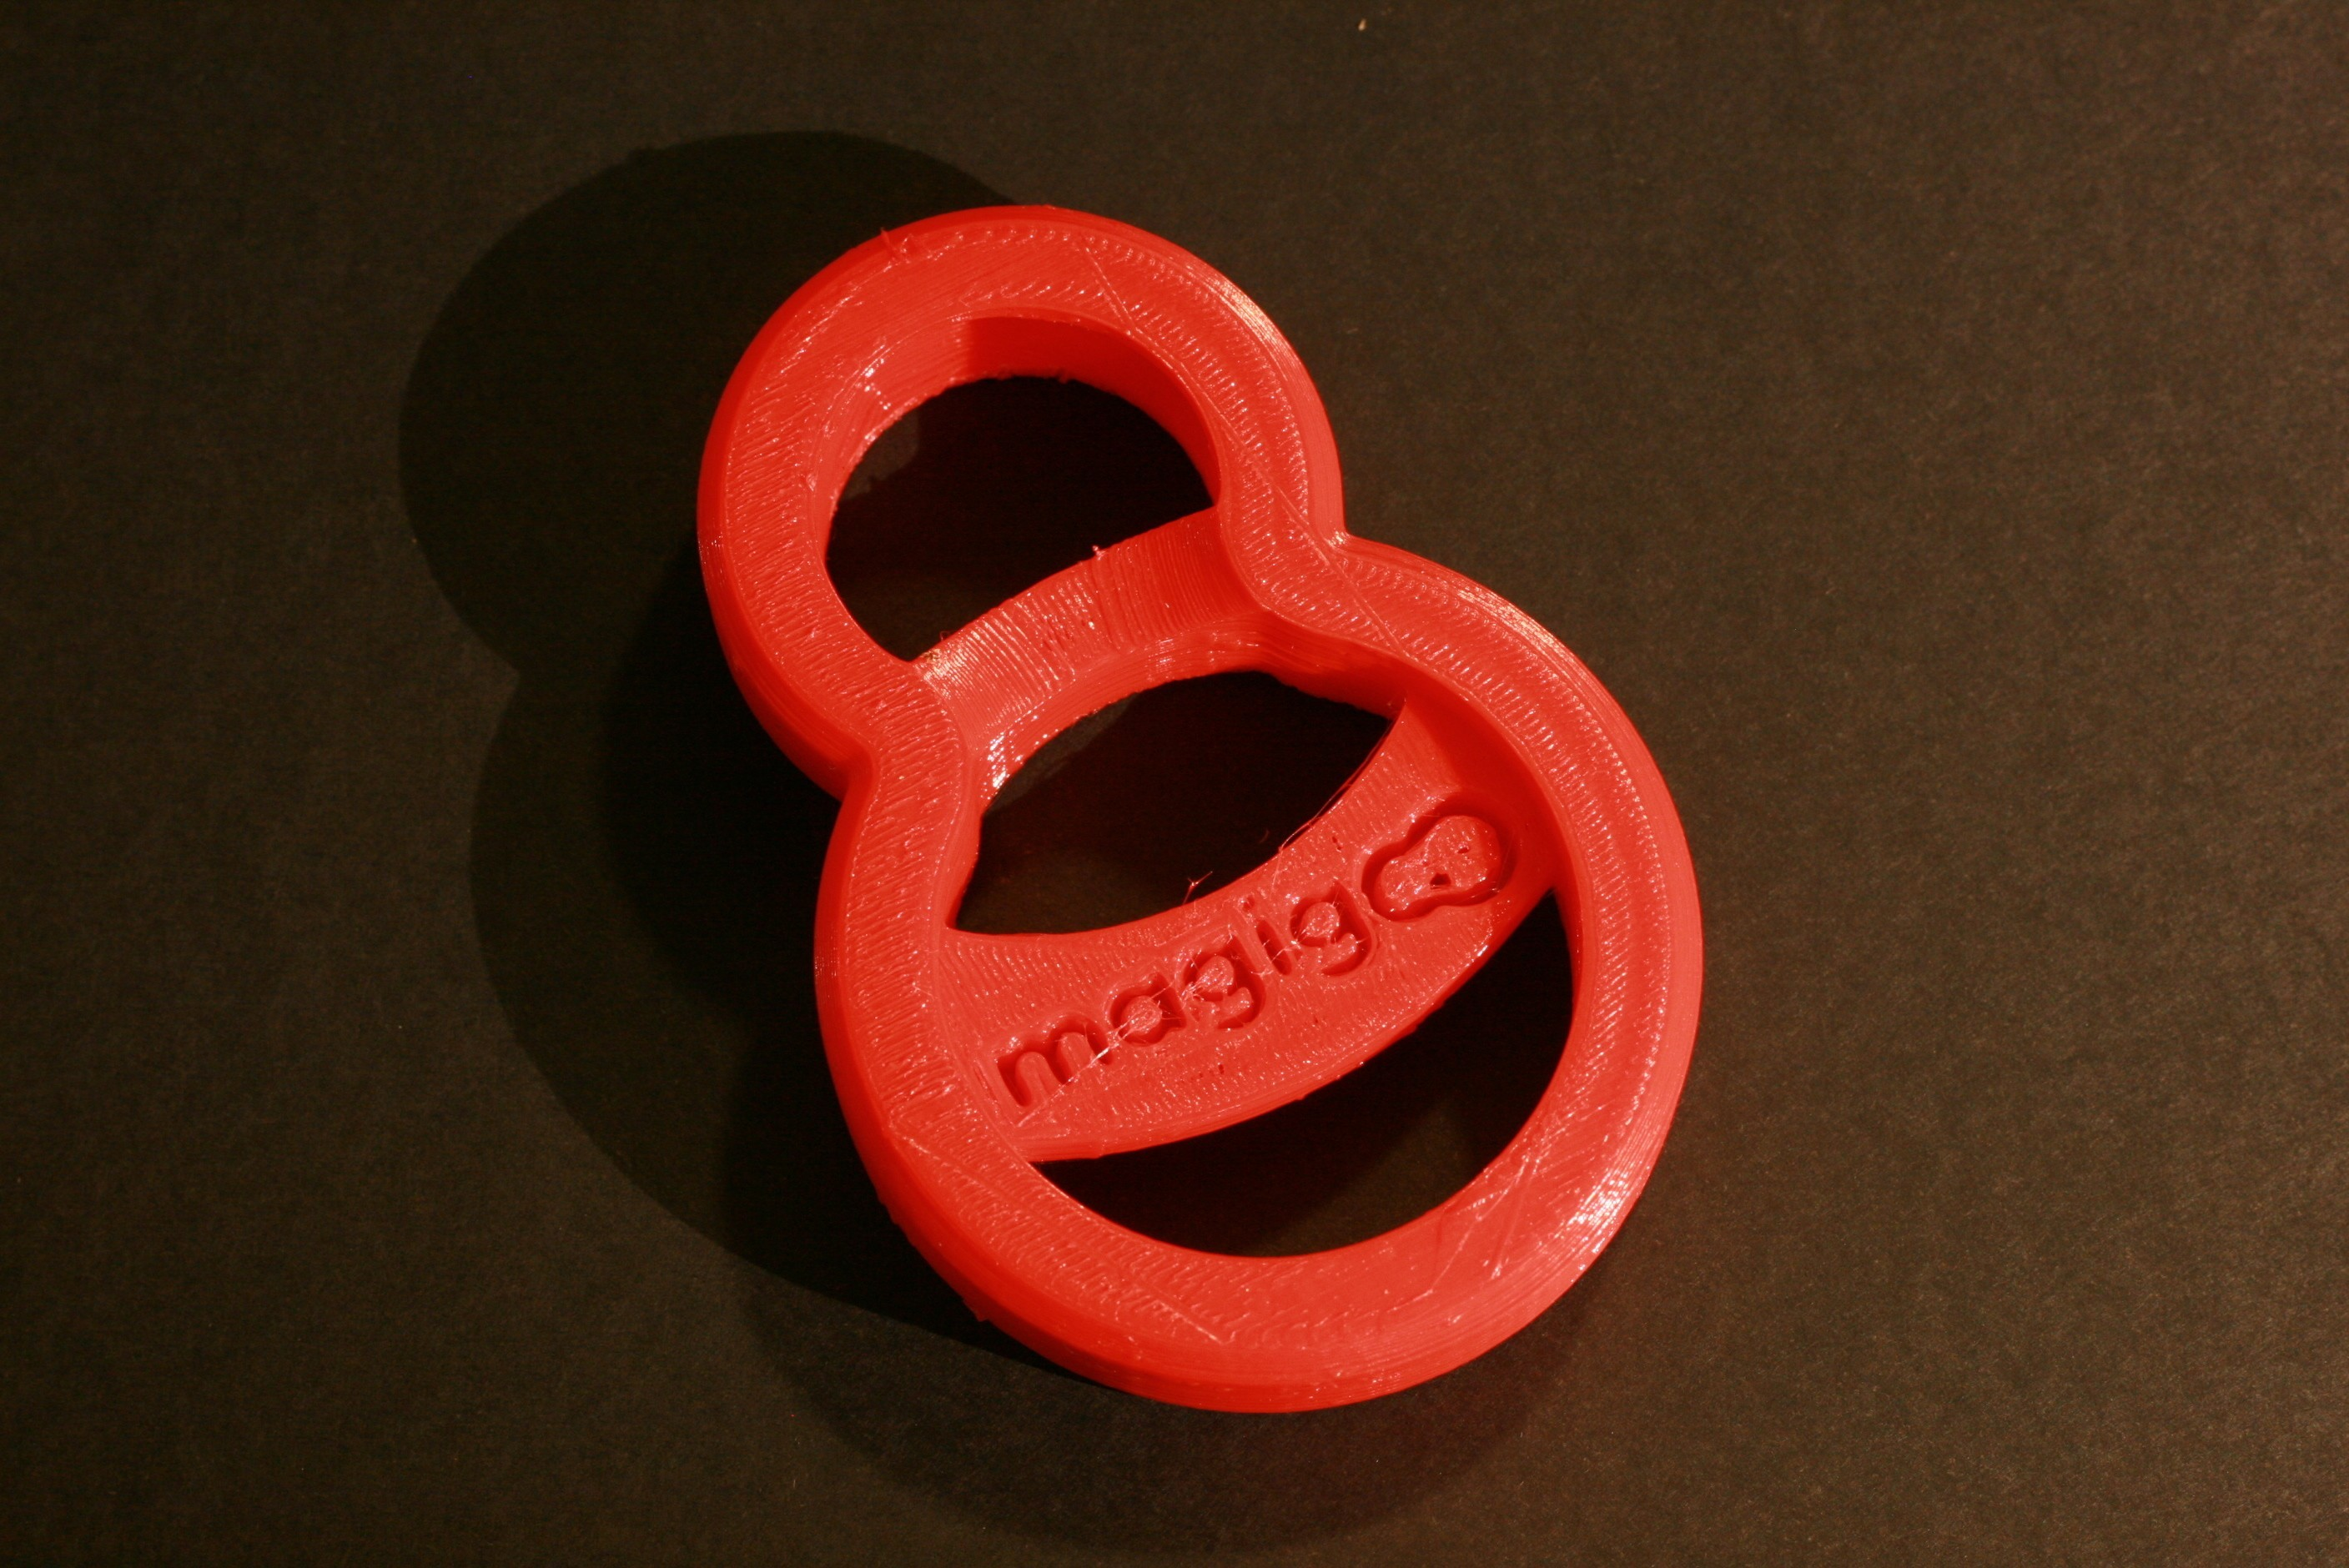 IMG_5671.JPG Download free STL file Bottle opener #MAGIGOO • 3D printer model, DesignProject